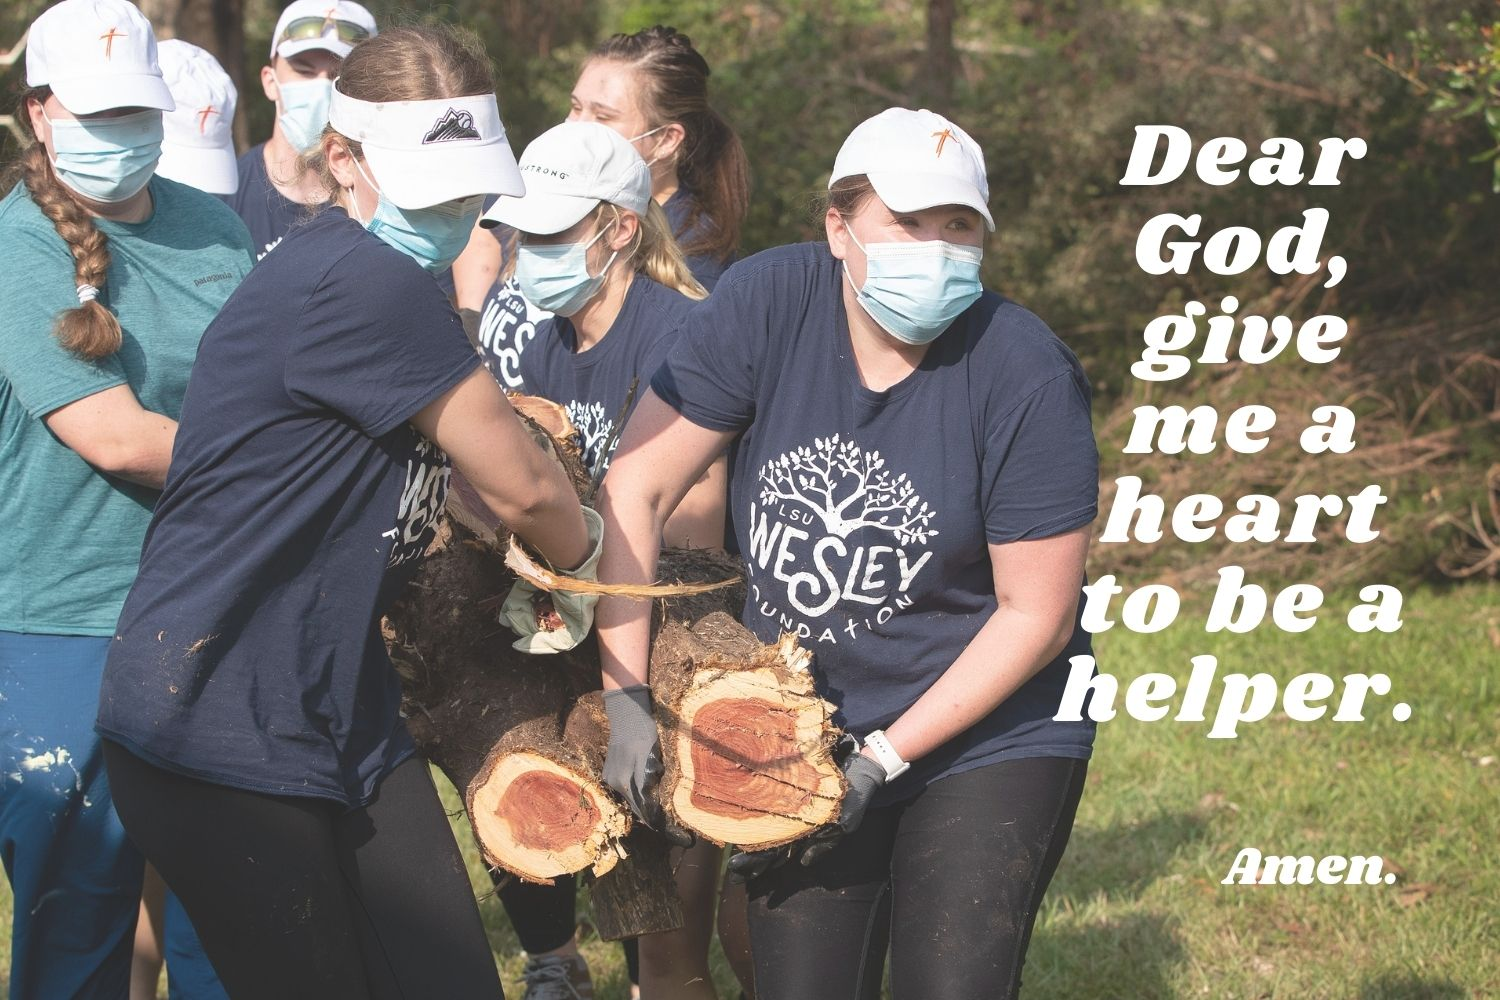 Dear God, give me a heart to be a helper. Amen. Photo by Mike DuBose, UM News; Canva image designed by Crystal Caviness, United Methodist Communications.